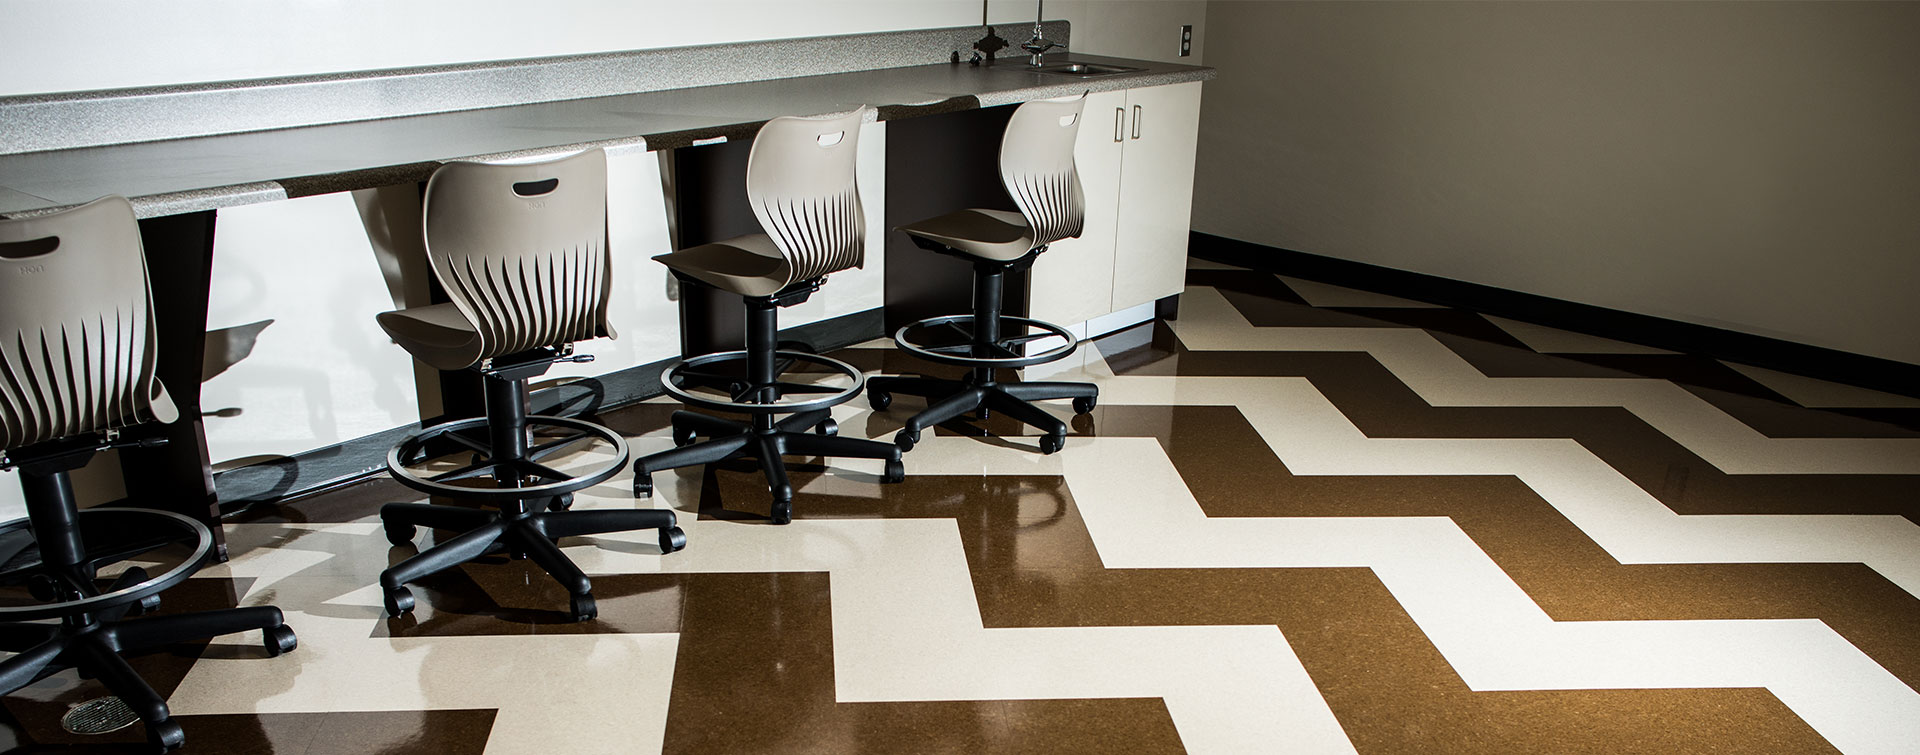 chevron-custom-commercial-flooring-pattern